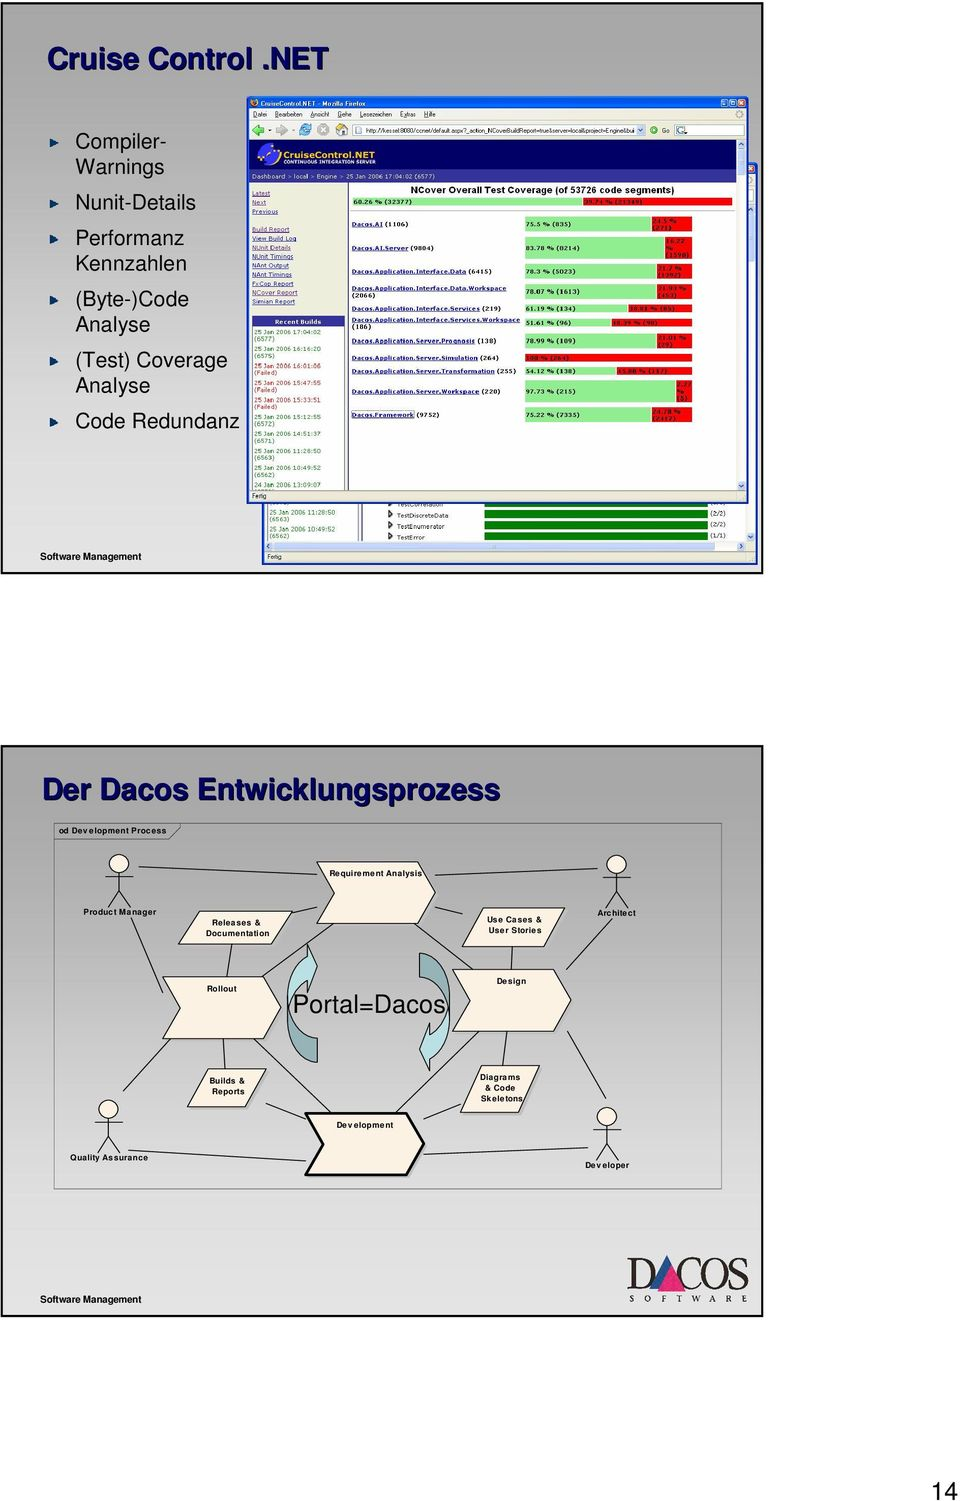 Analyse Code Redundanz Der Dacos Entwicklungsprozess od Dev elopment Process Requirement Analysis